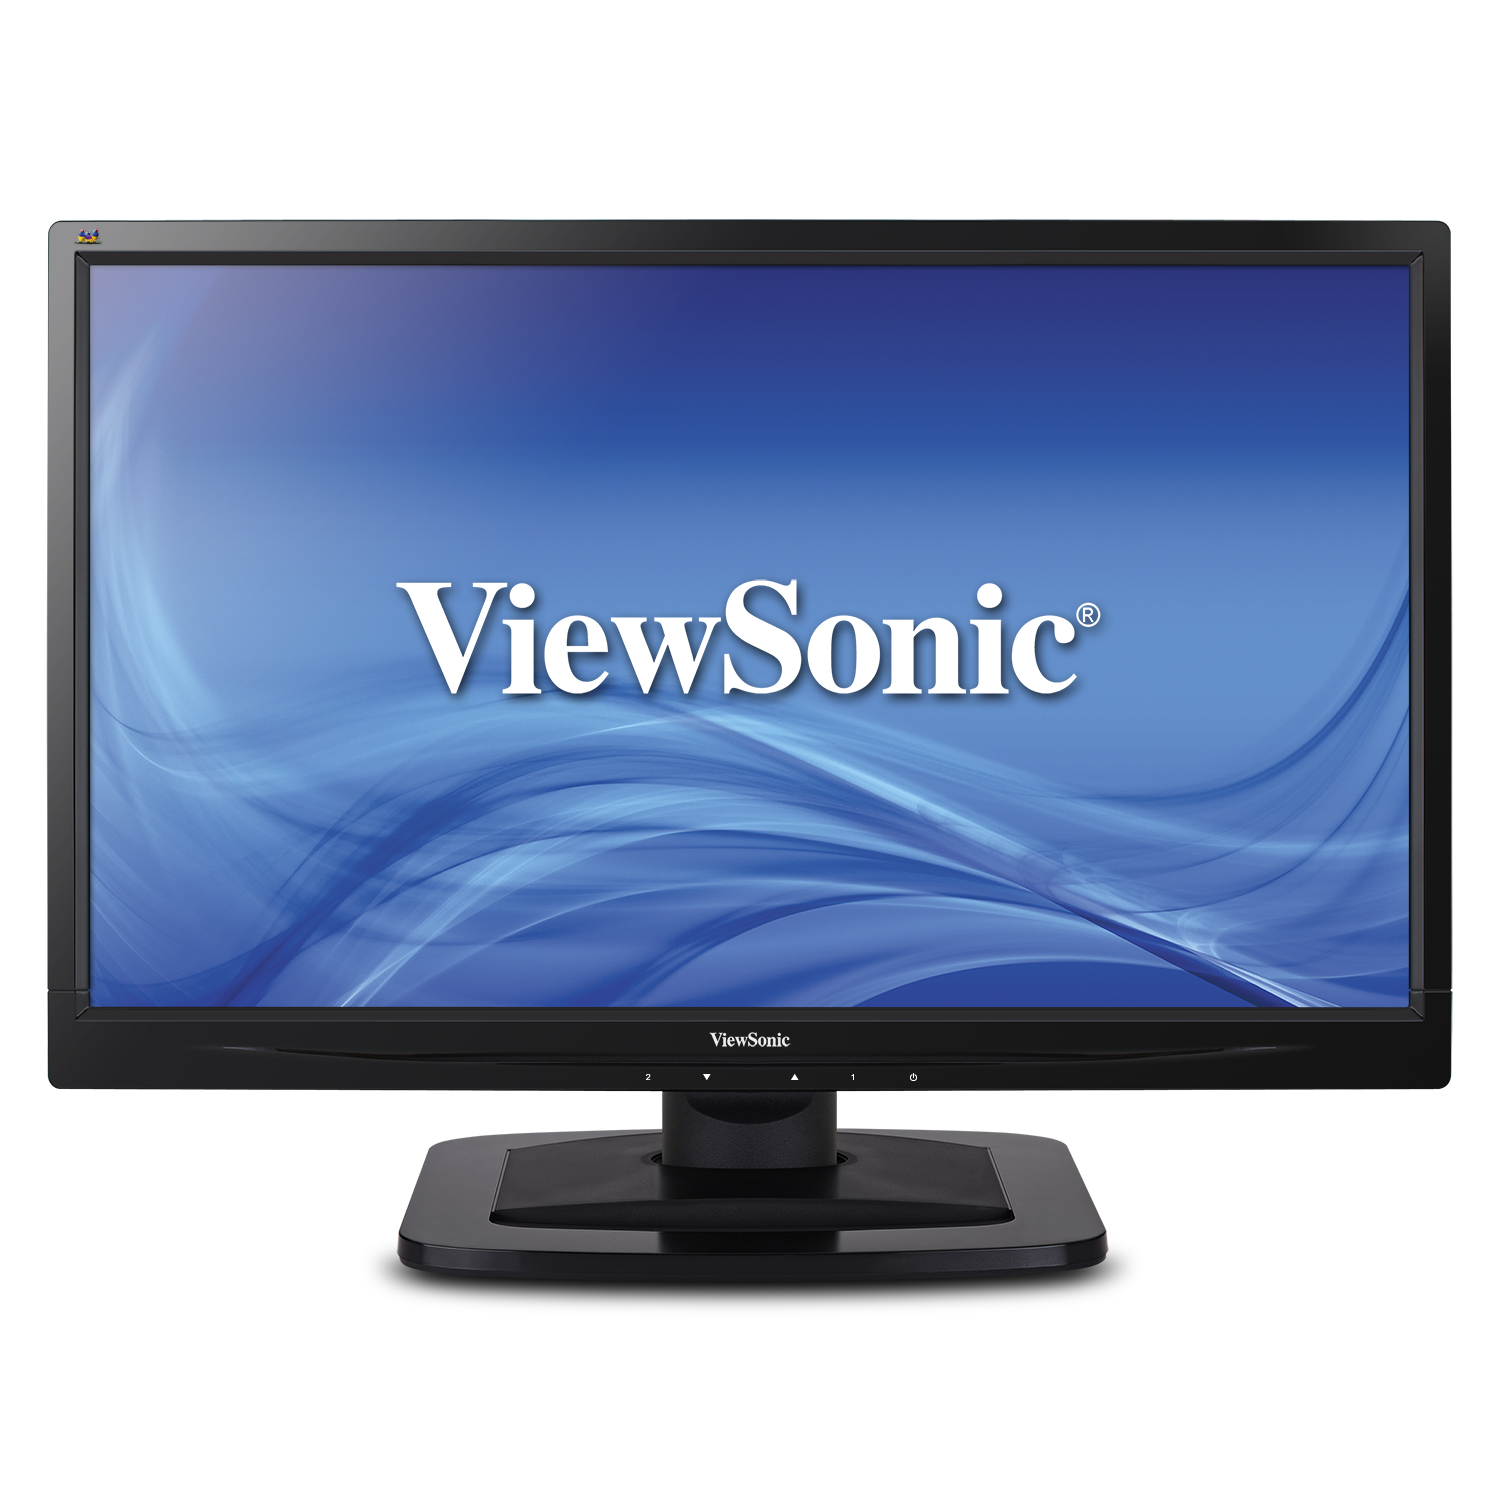 slide 1 of 6,show larger image, va2249s high-performance monitor with superclear™ technology